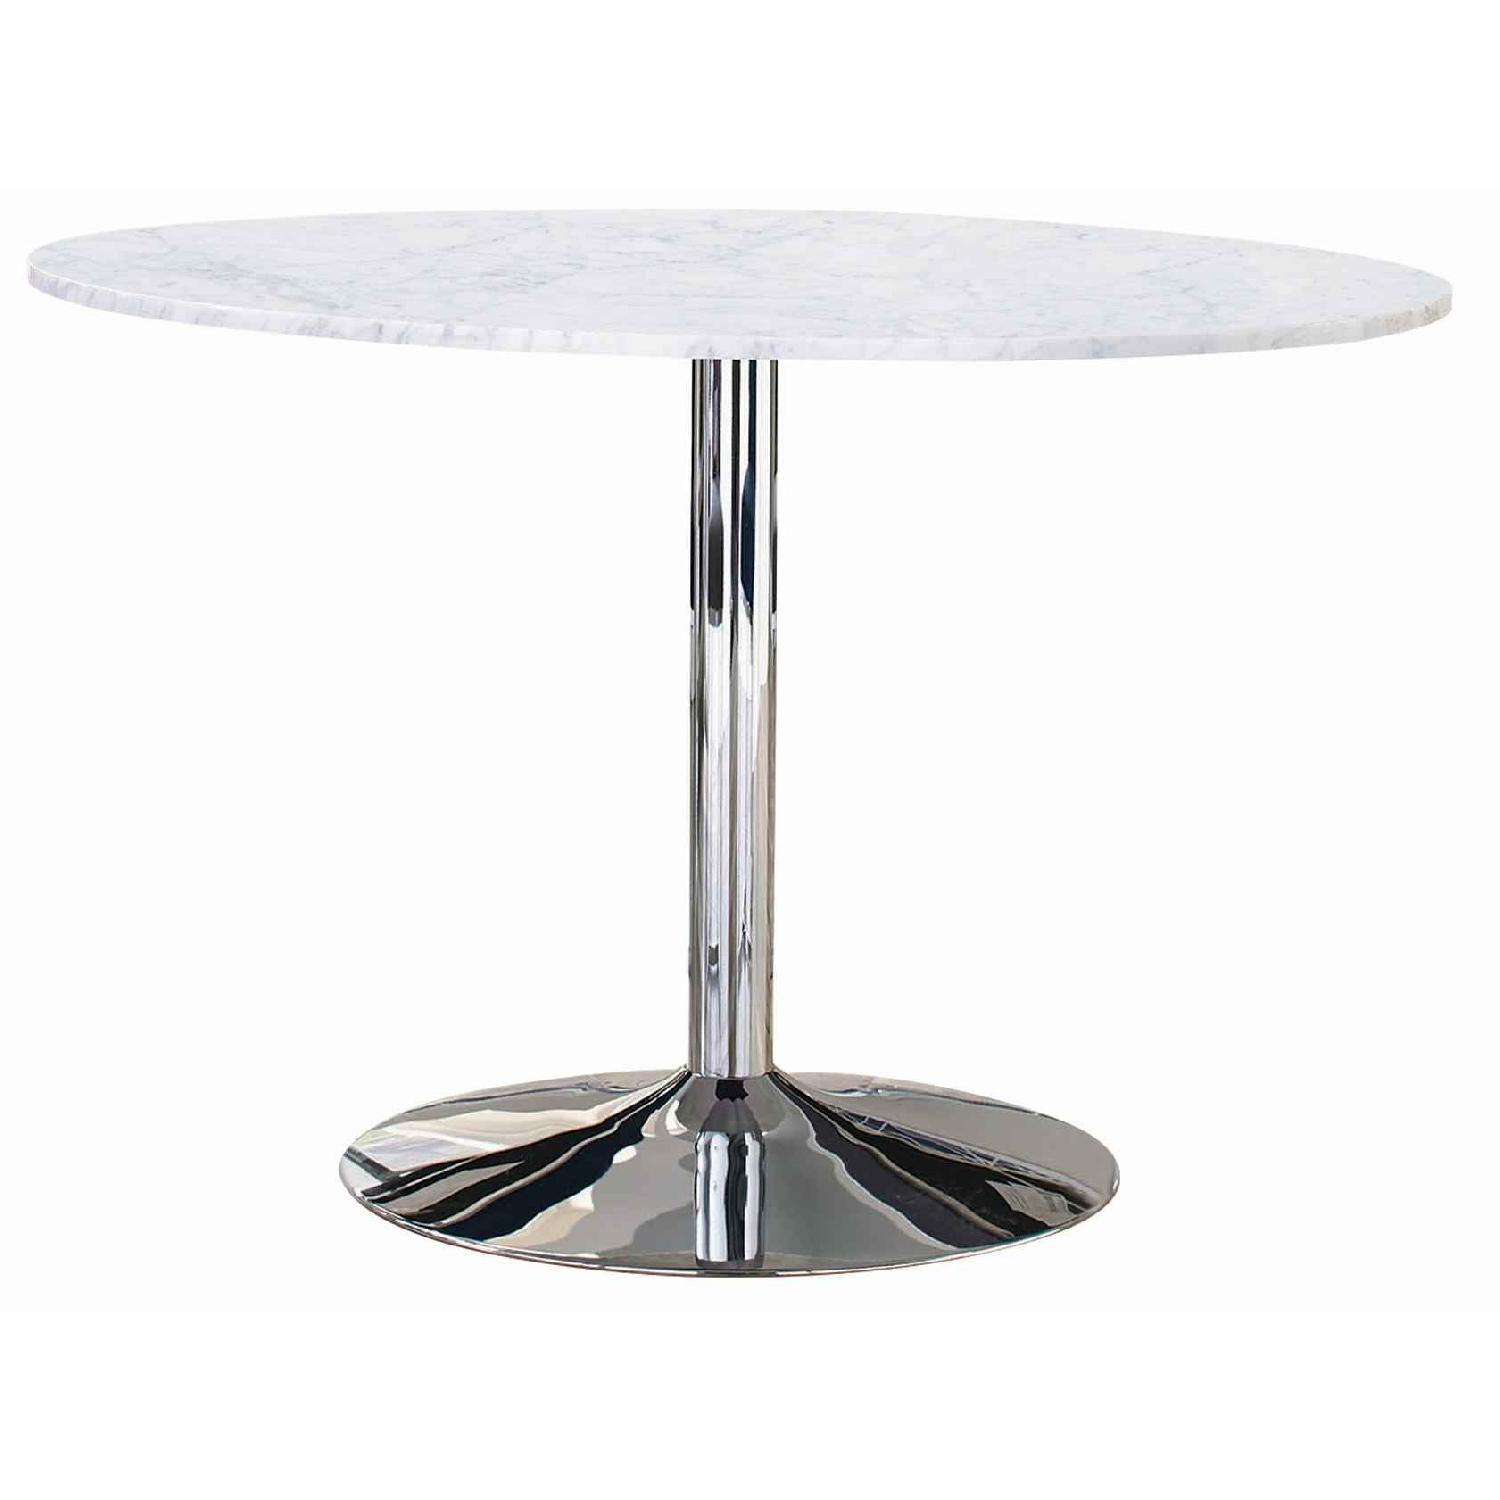 Modern Italian Marble Top Dining Table w/ Chrome Base - image-0